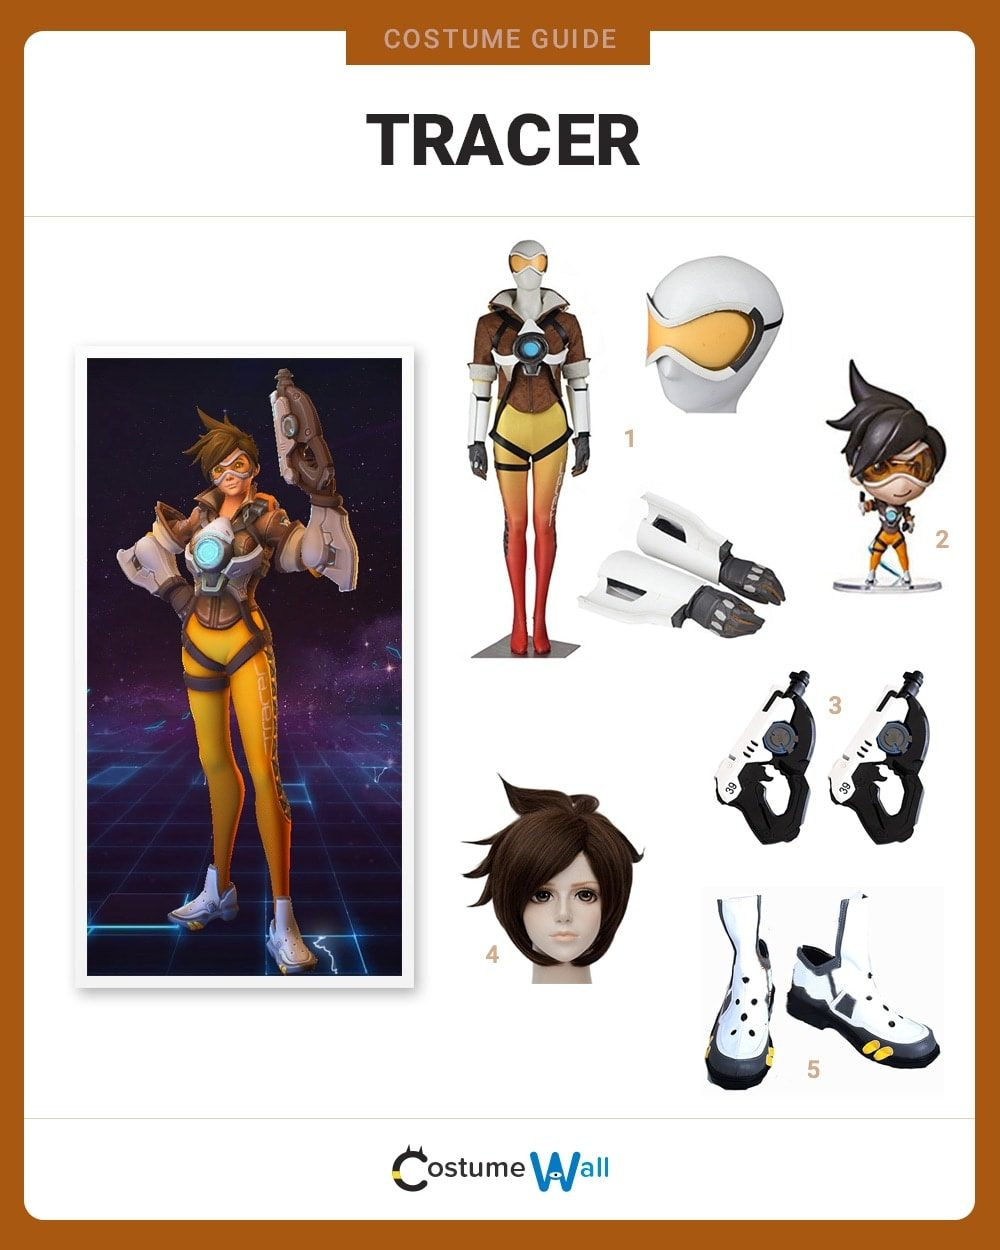 Tracer Costume Guide